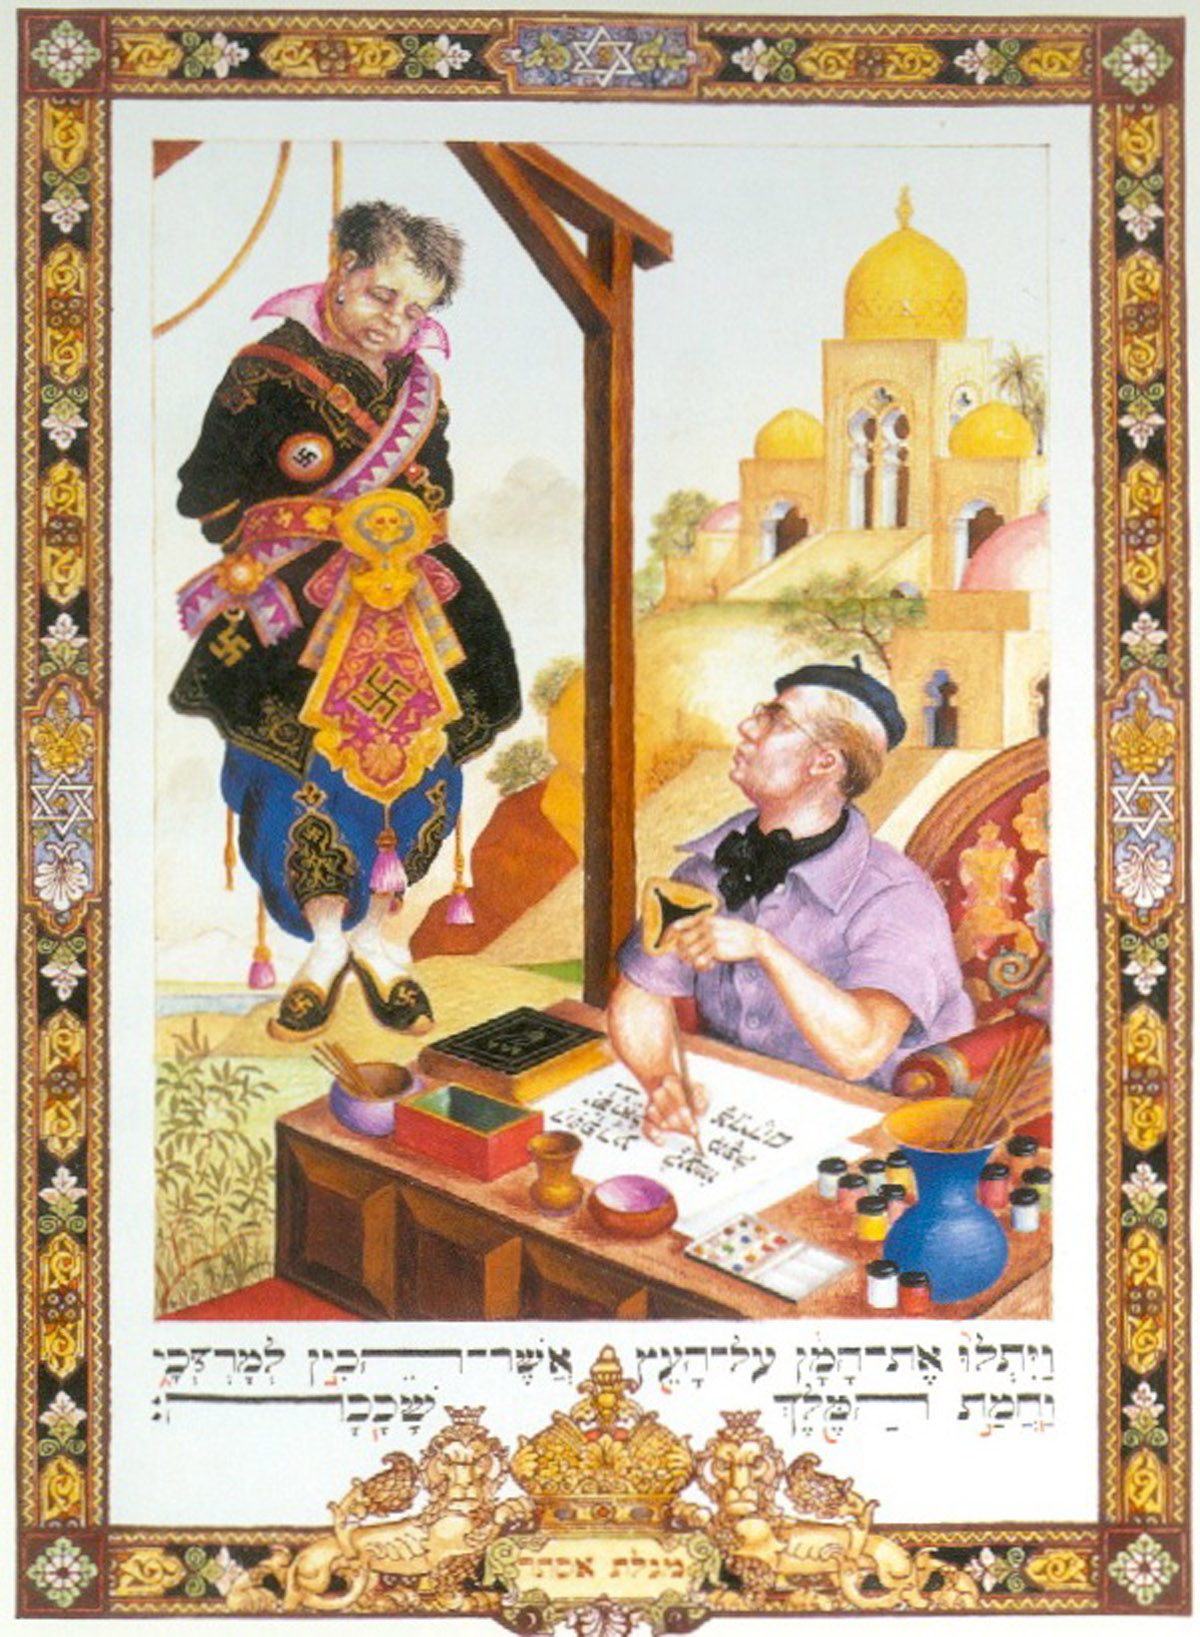 Haman at the Gallows; Book of Esther (1950) by Arthur Szyk